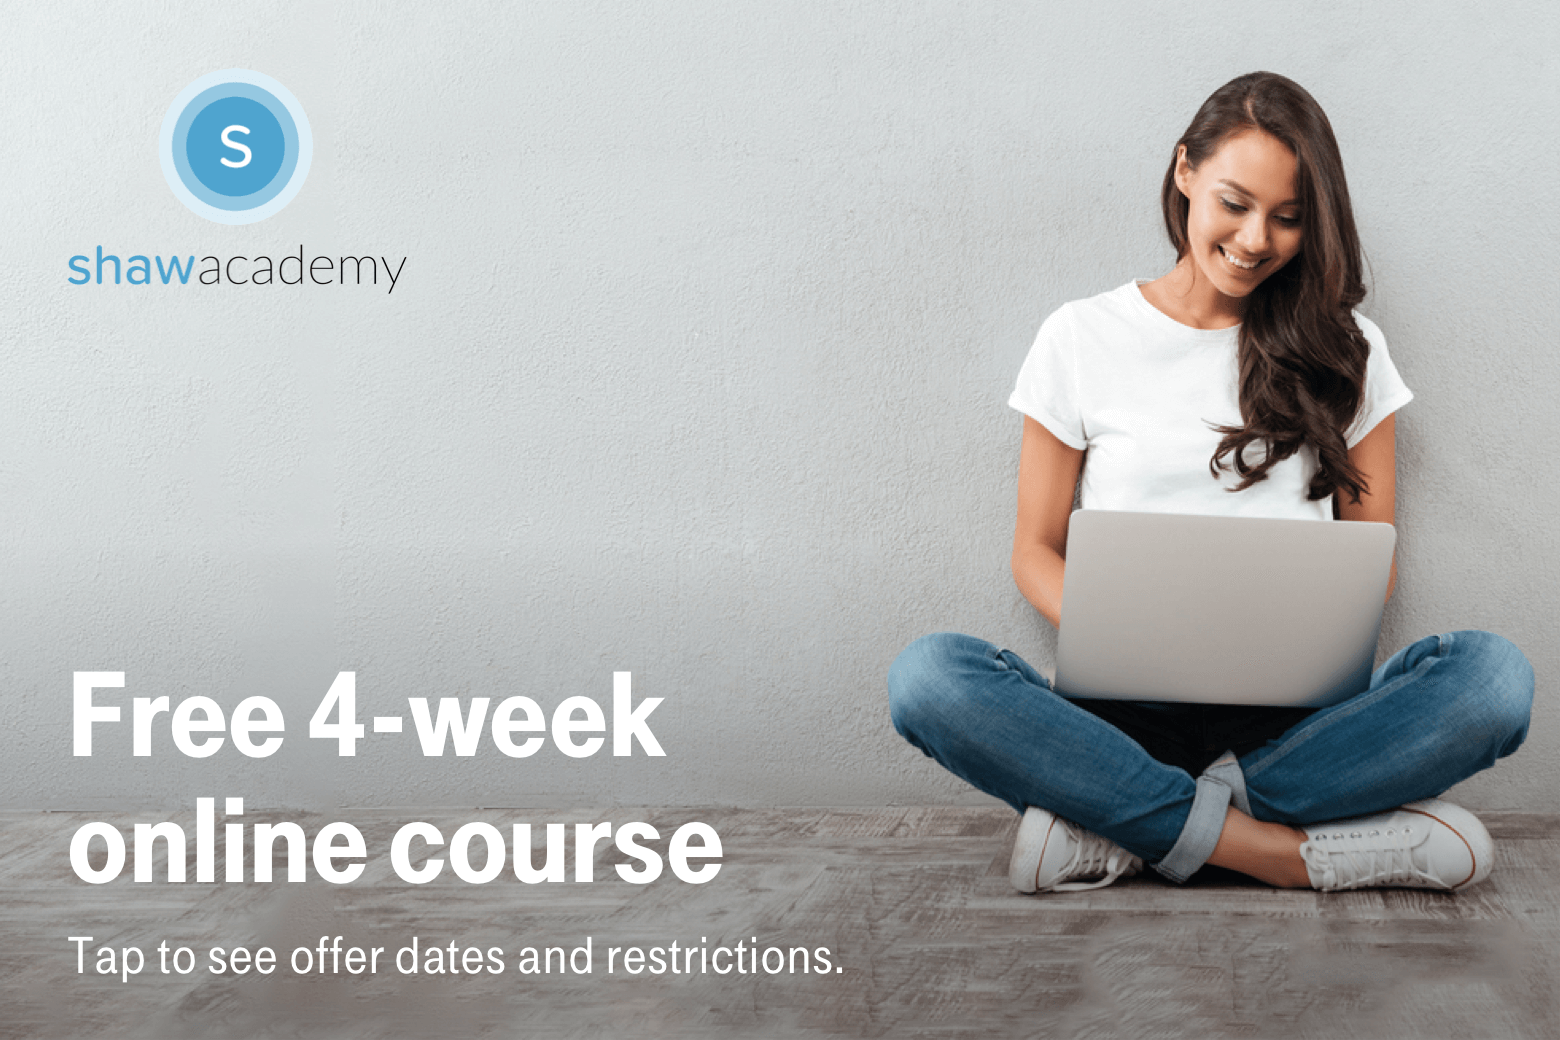 Shaw Academy. Free 4-week online course. Tap to see offer dates and restrictions.